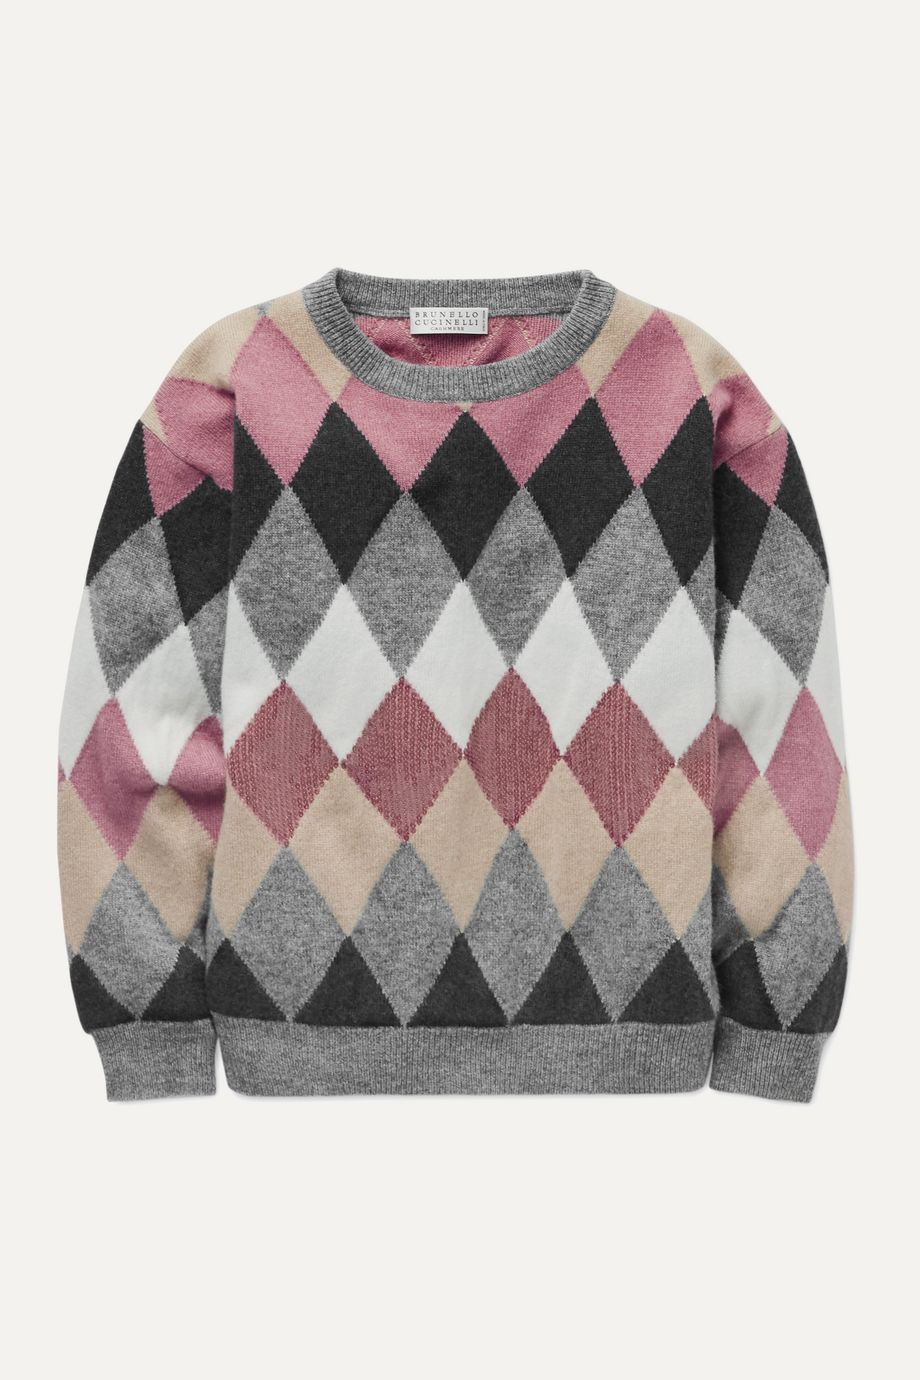 Brunello Cucinelli Kids Ages 4 - 6 sequin-embellished argyle wool-blend sweater